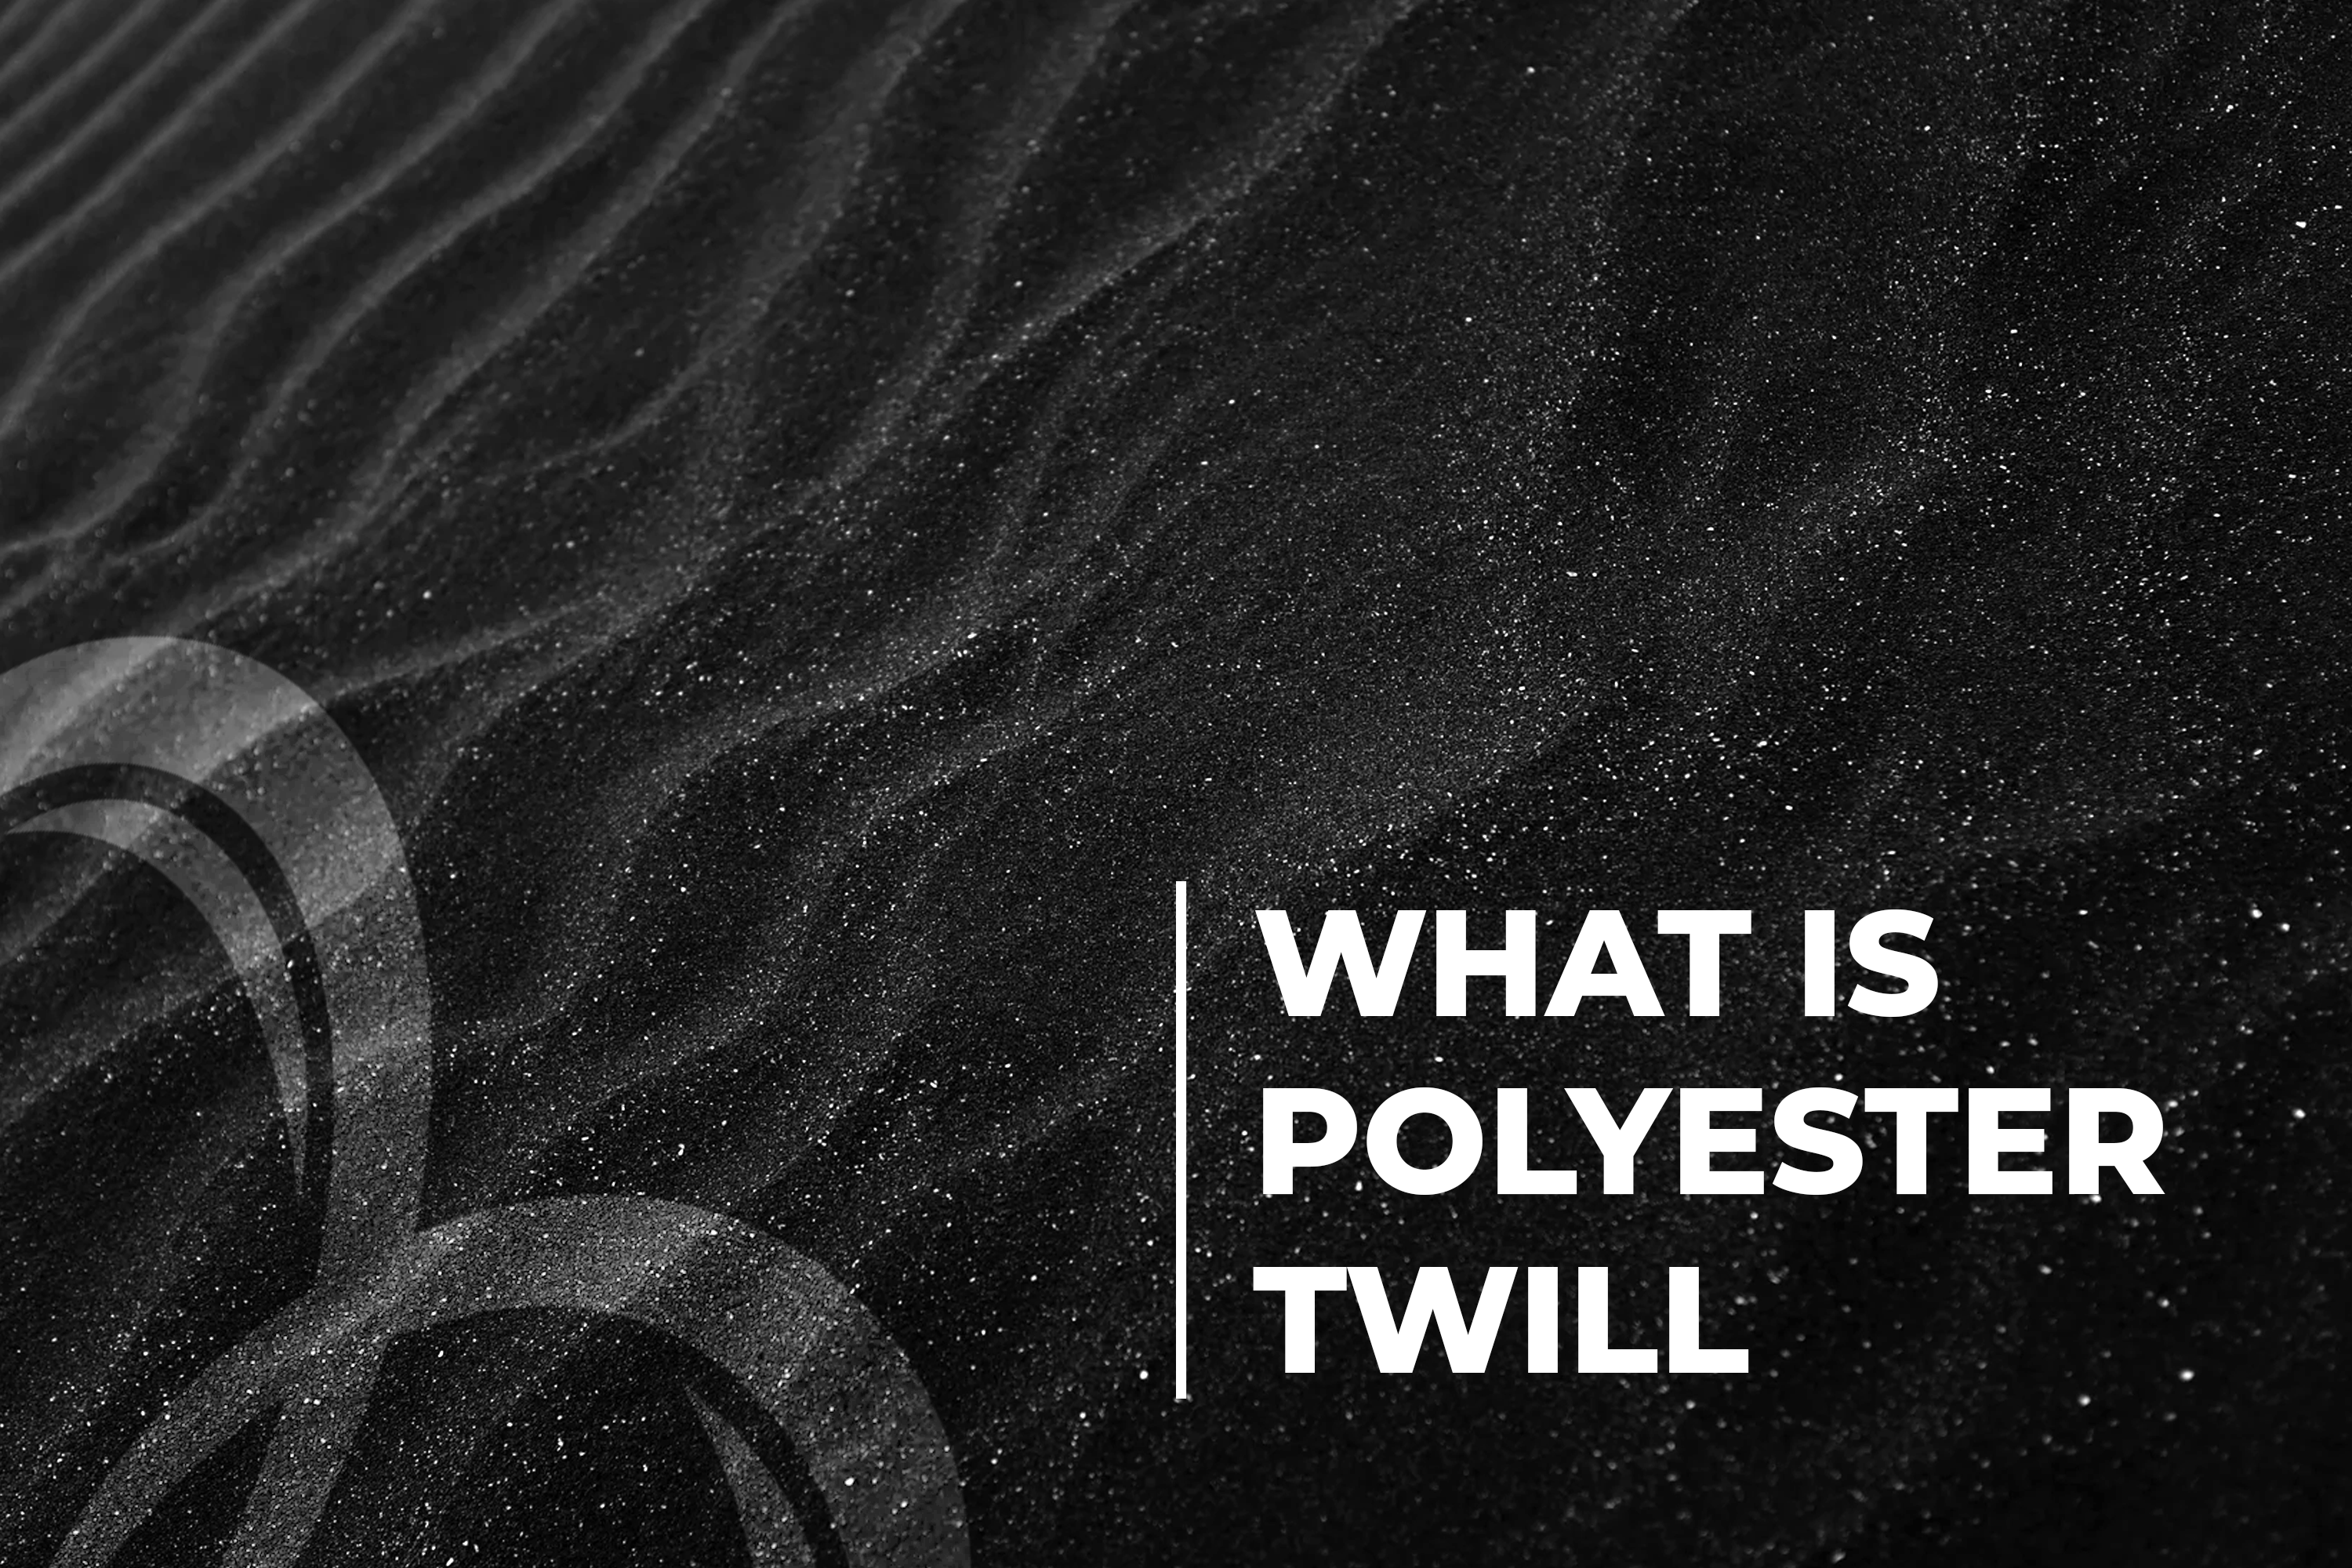 What Is Polyester Twill